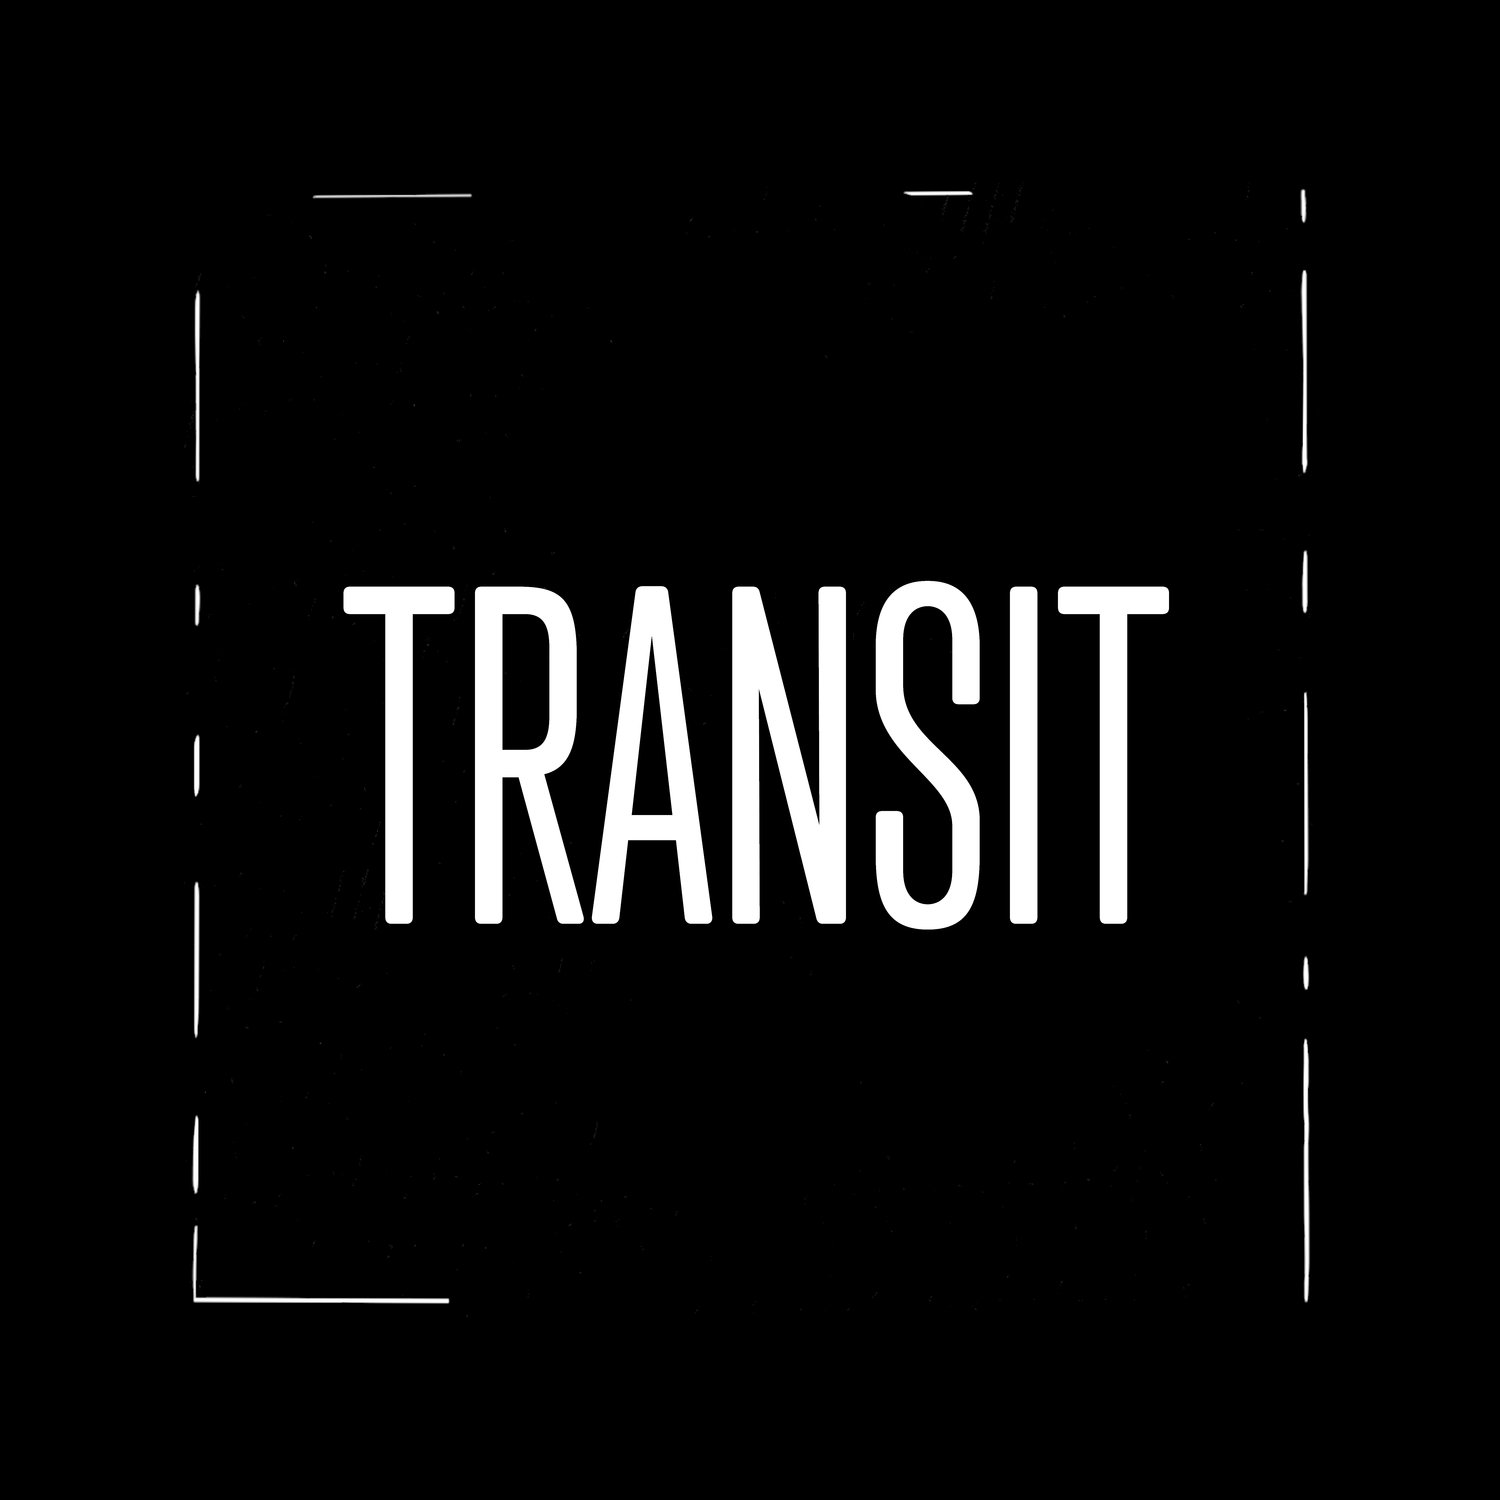 TRANSIT | DIGITAL ART BERLIN